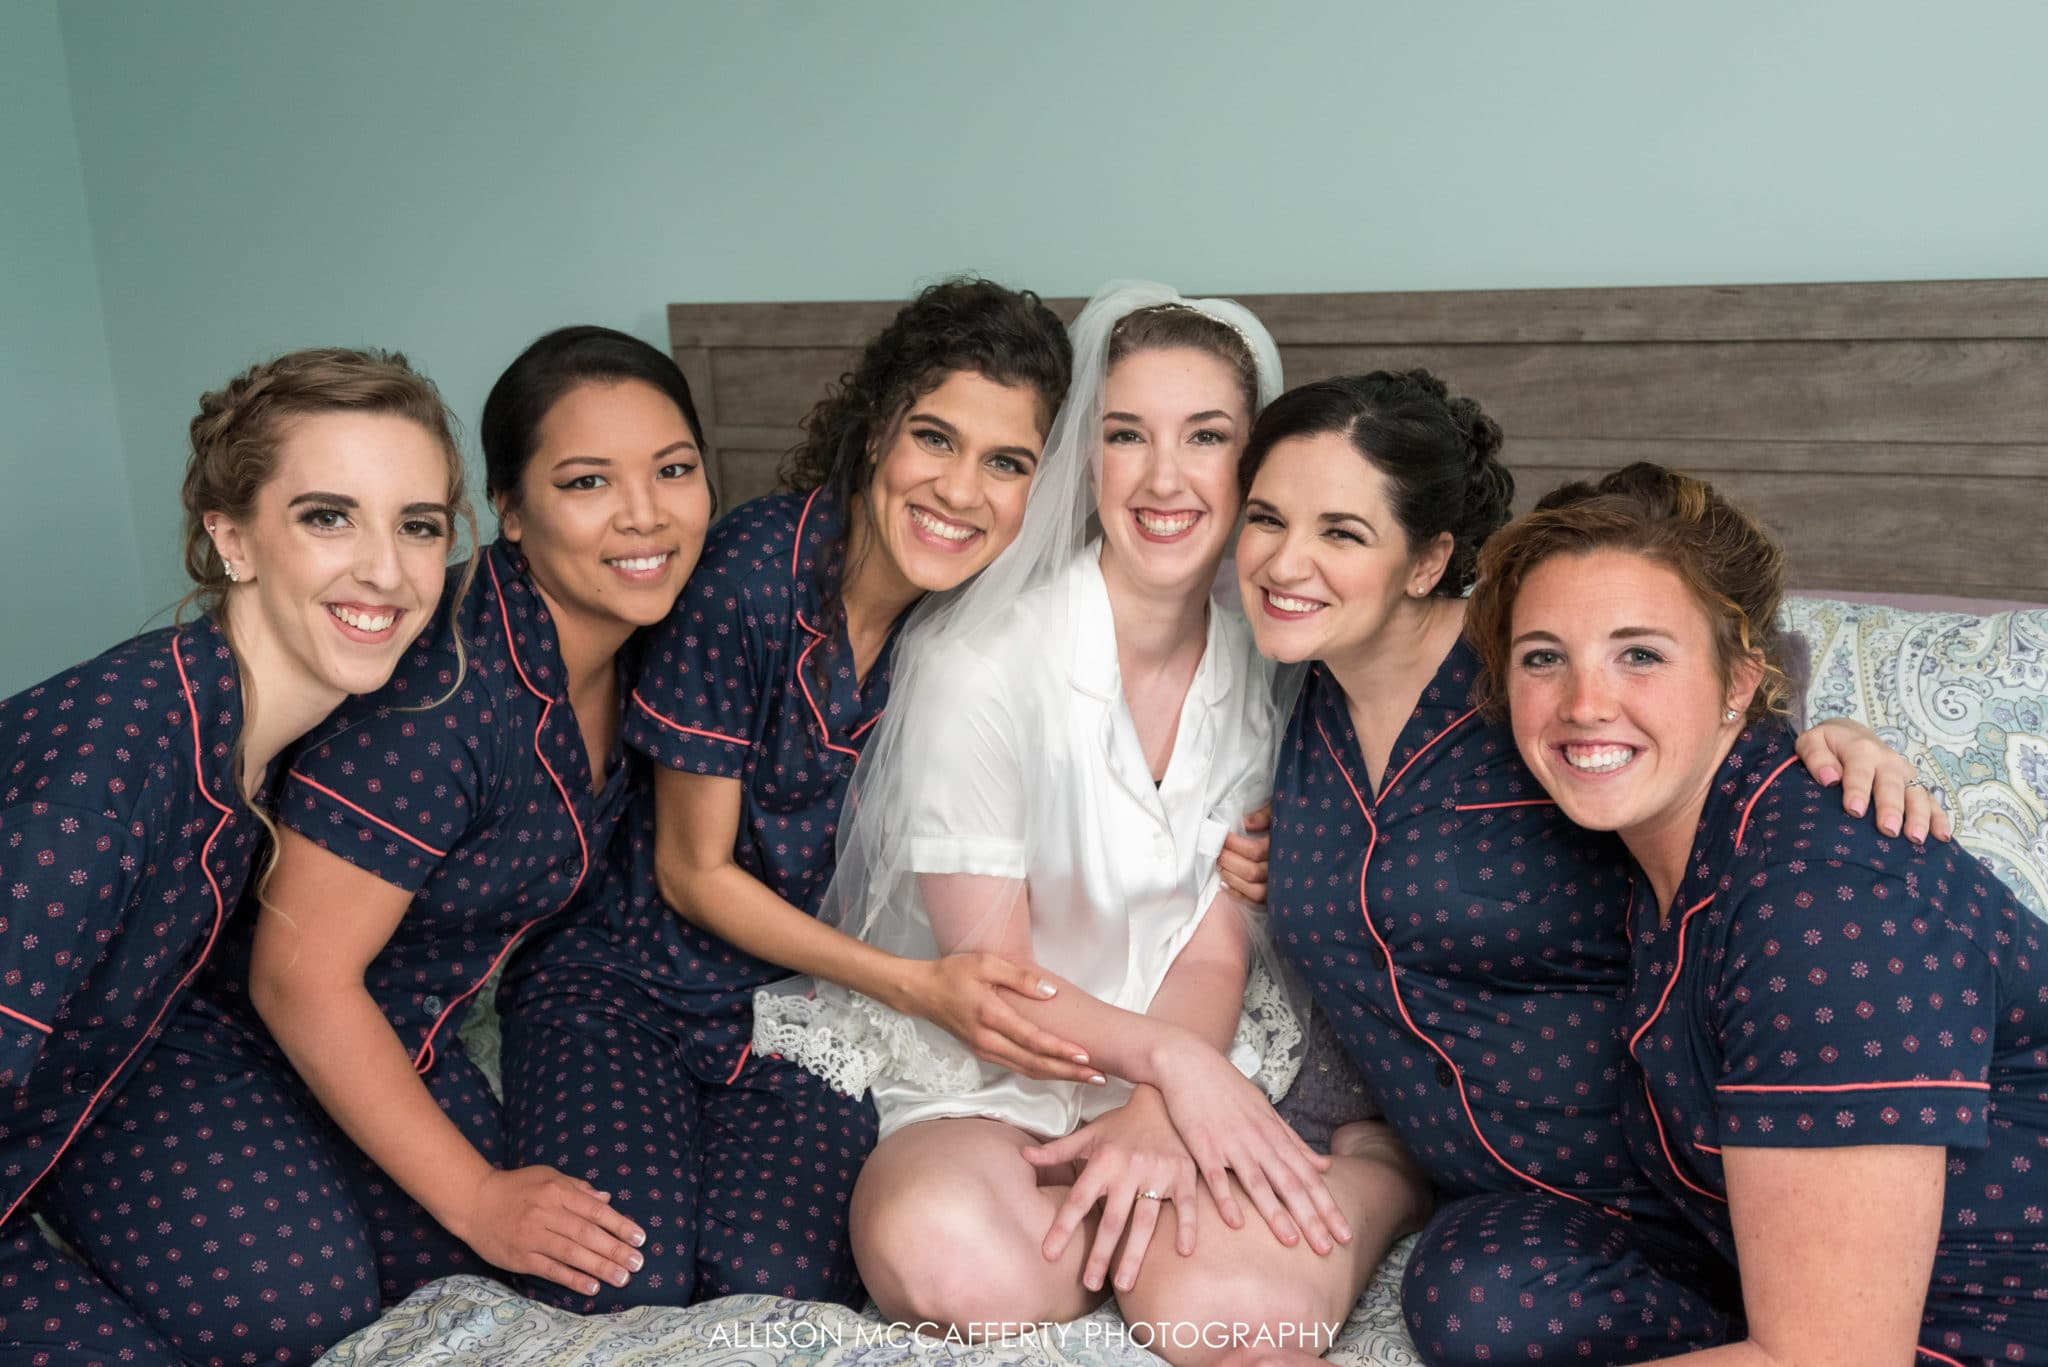 Bride and her bridesmaids in matching pjs